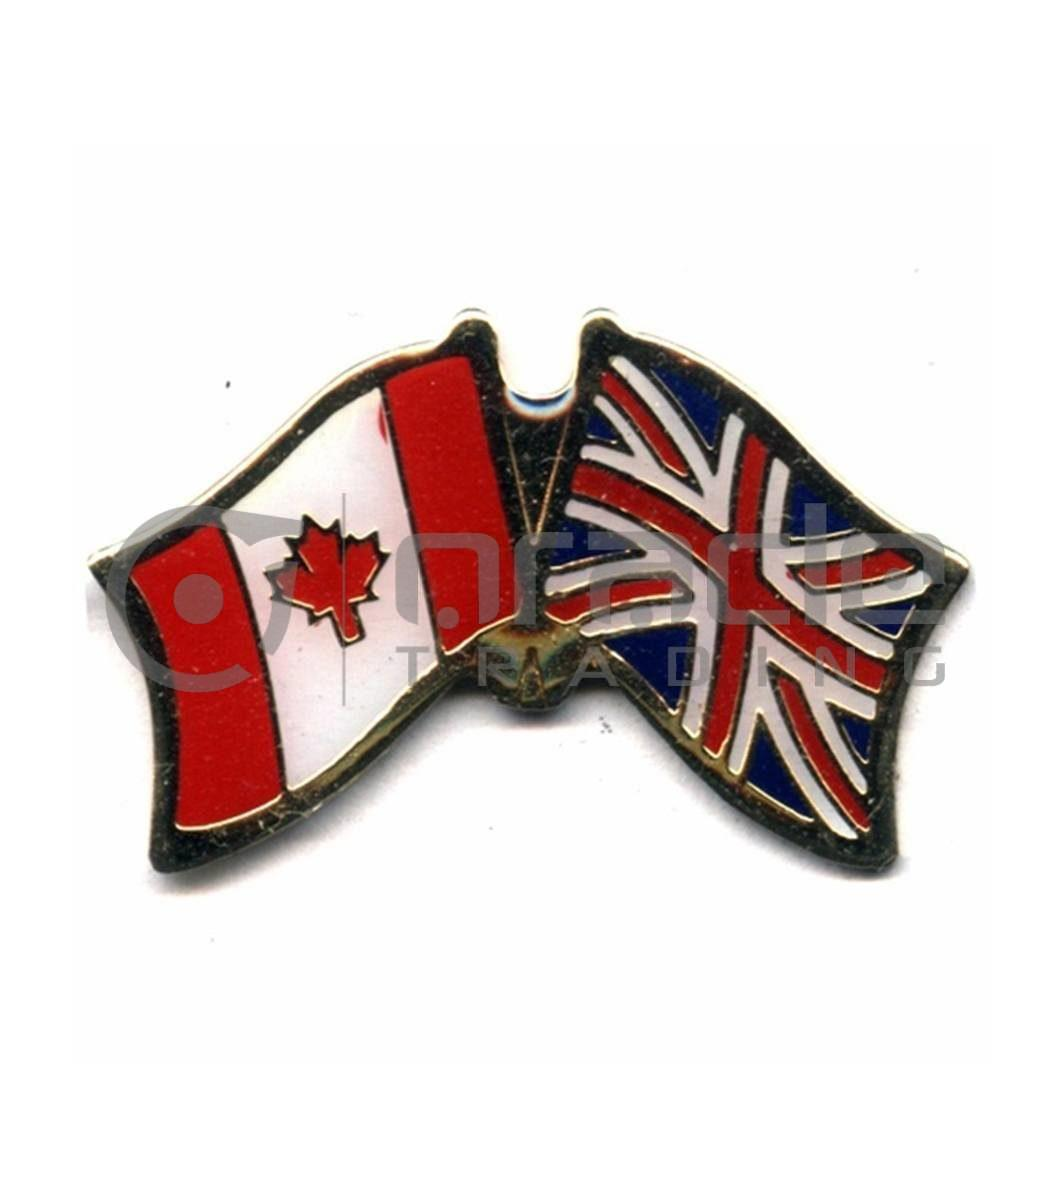 UK / Canada Friendship Lapel Pin (United Kingdom)